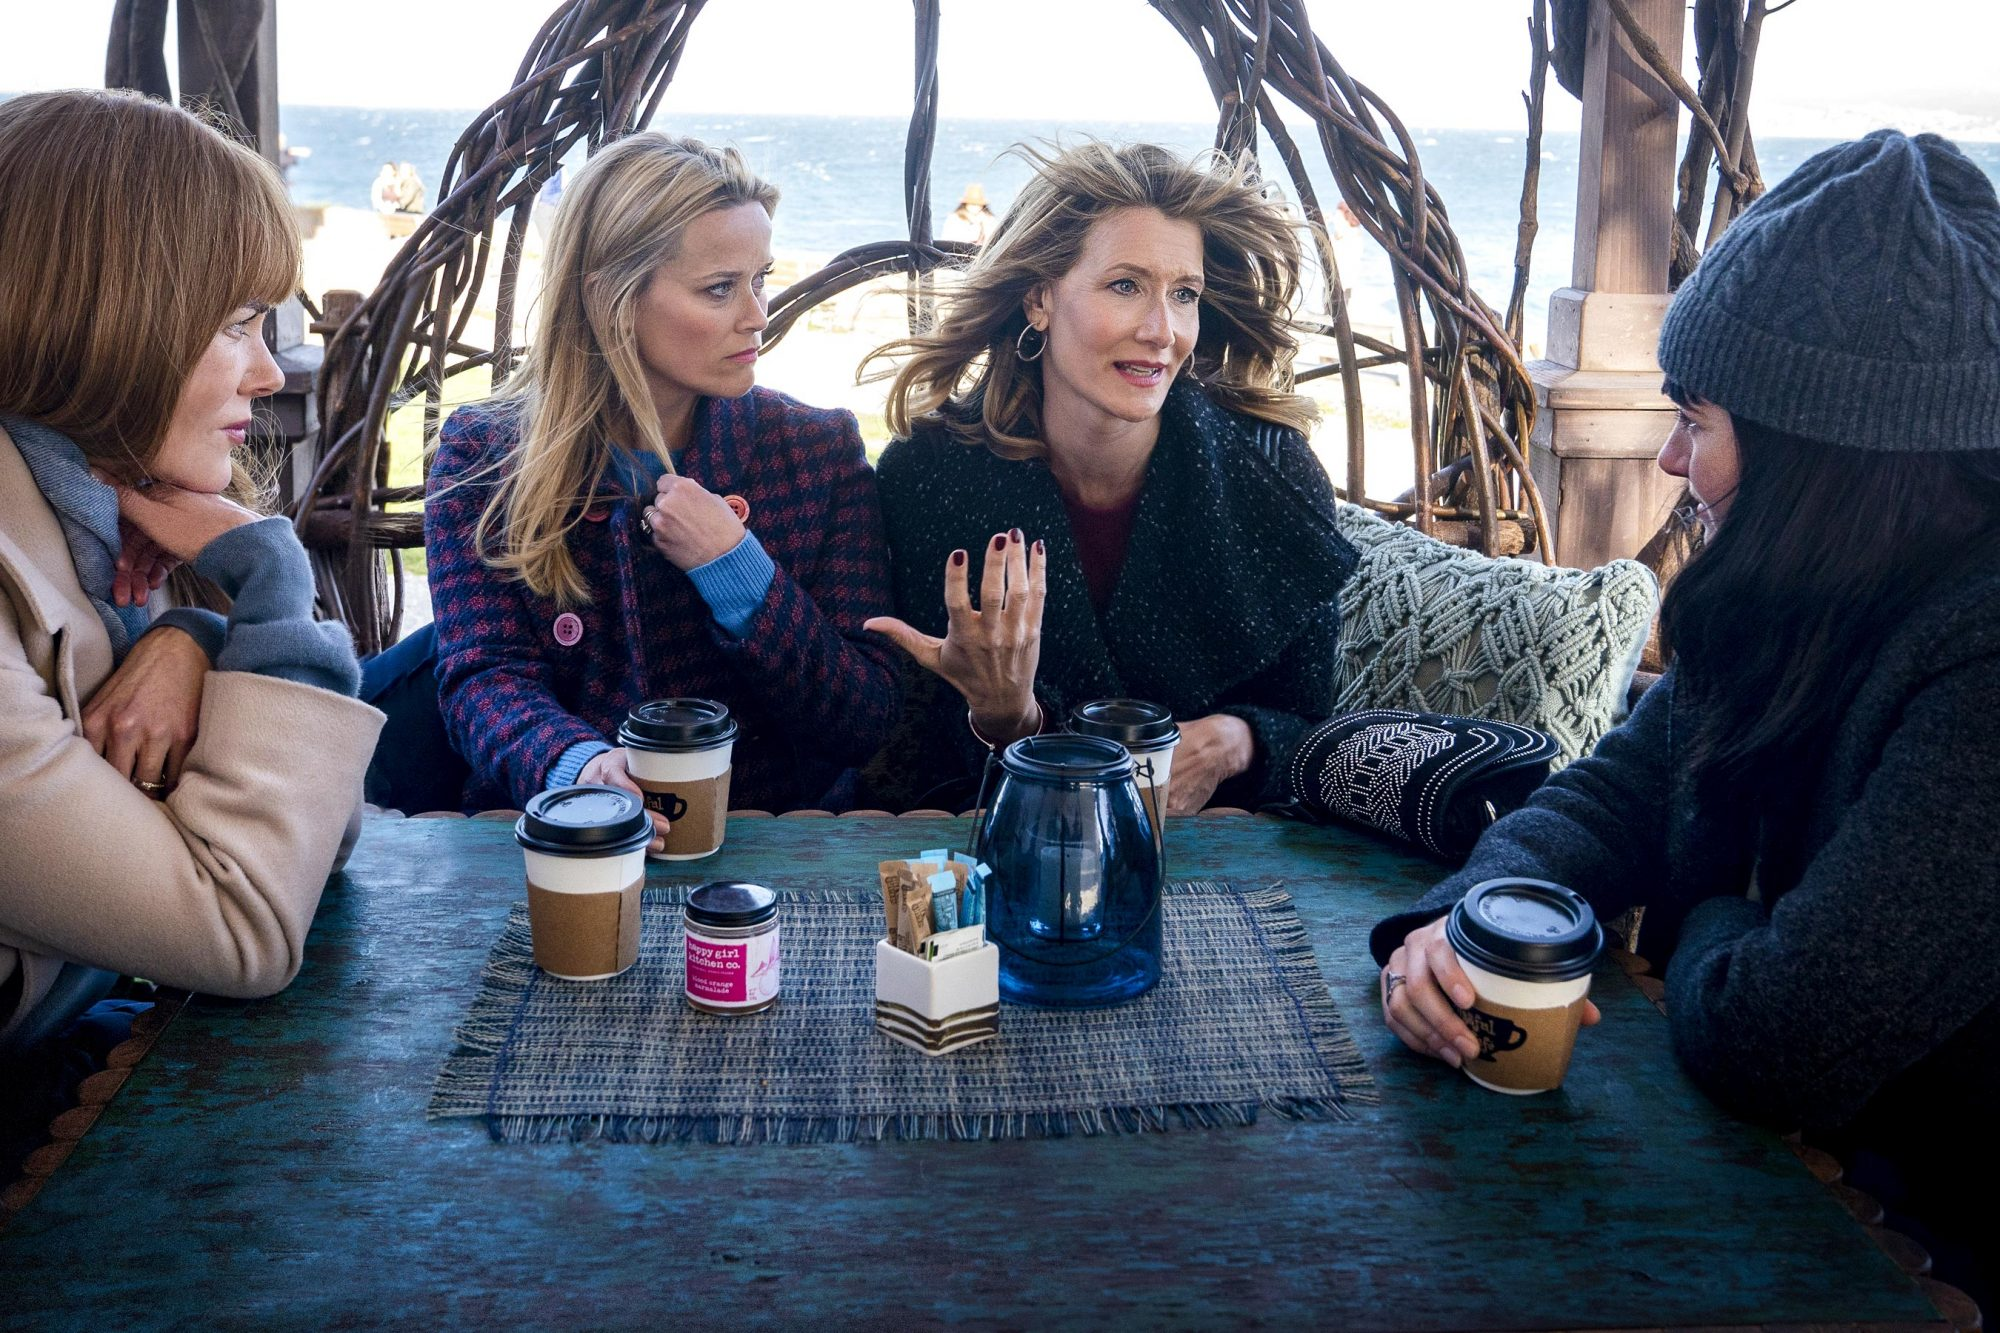 Big Little Lies Season 2 Nicole Kidman, Reese Witherspoon, Laura Dern, Shailene Woodley. photo: Jennifer Clasen/HBO